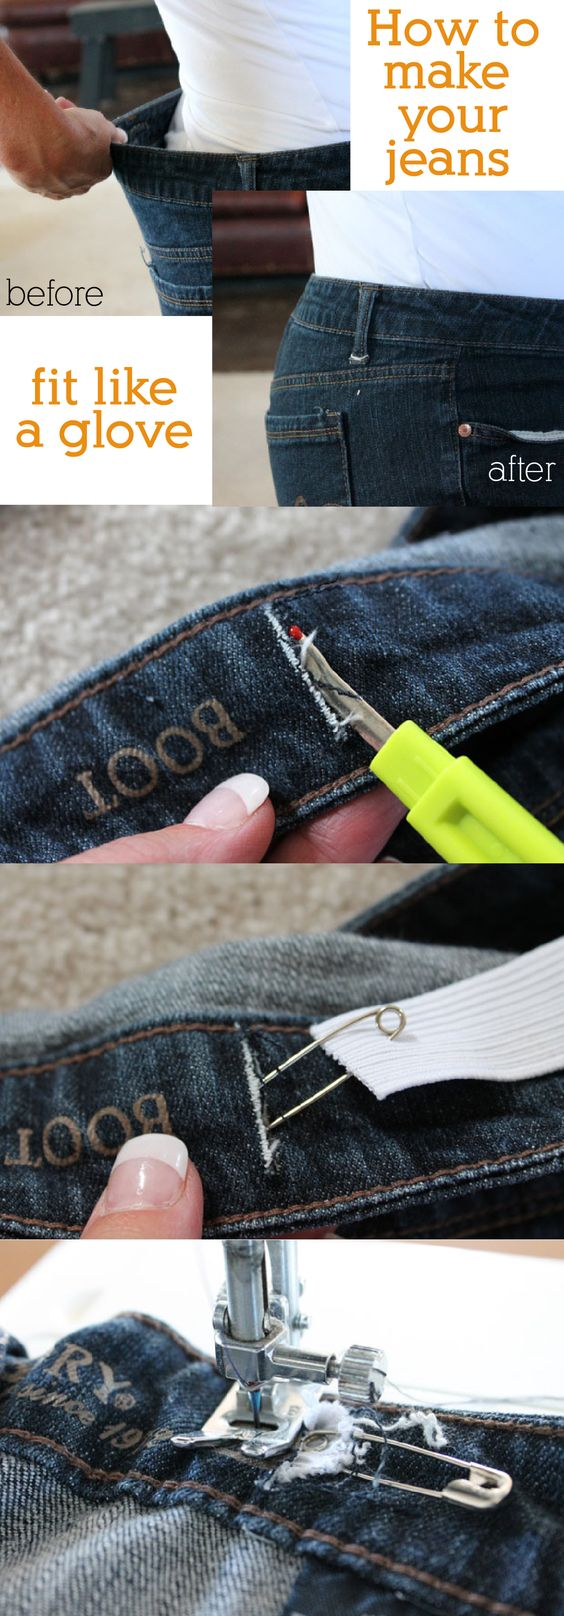 What would be a good starter for my essay about jeans?